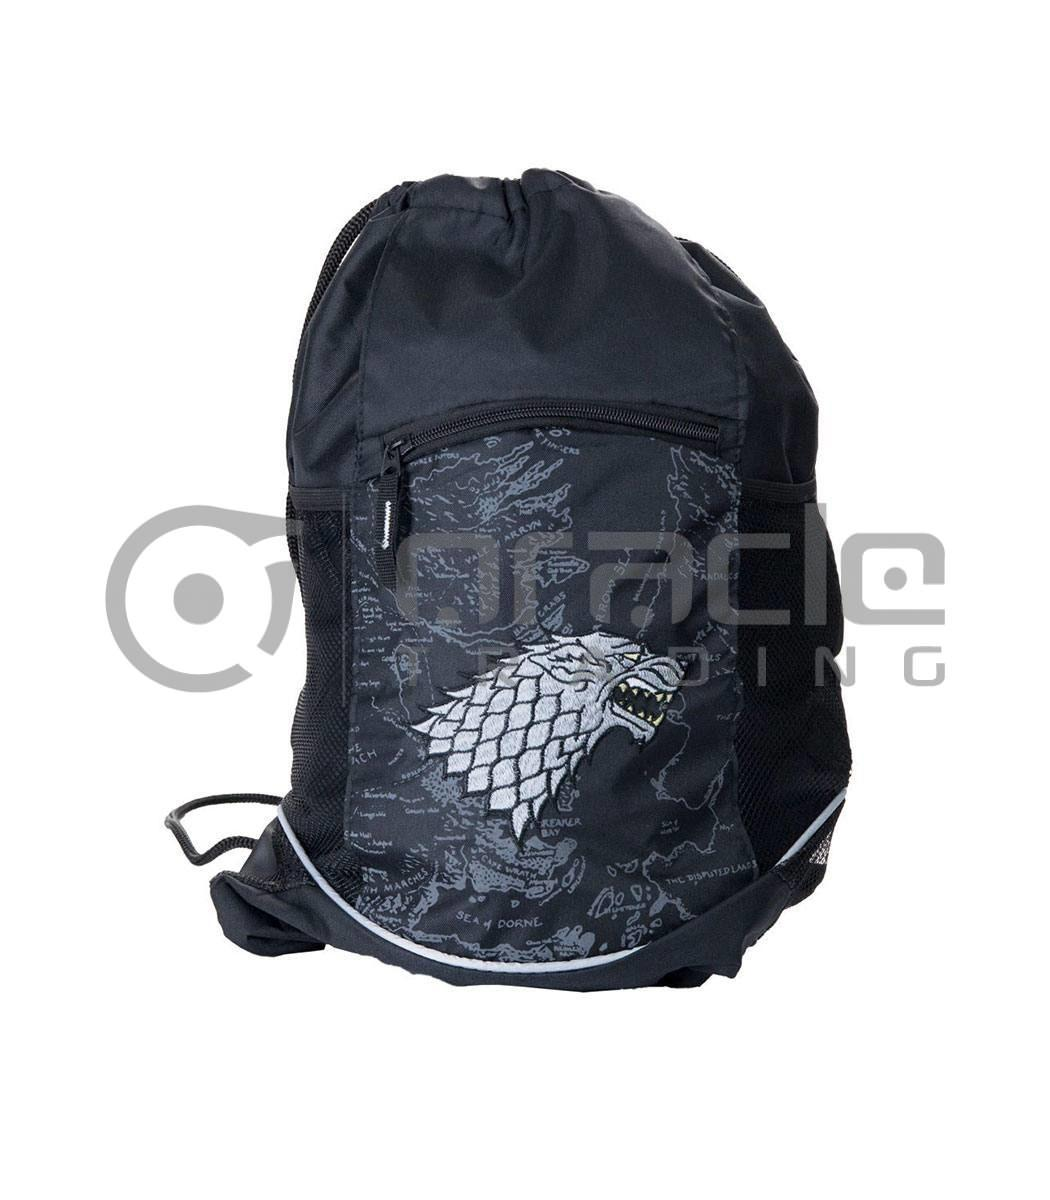 Game of Thrones Stark Gym Bag